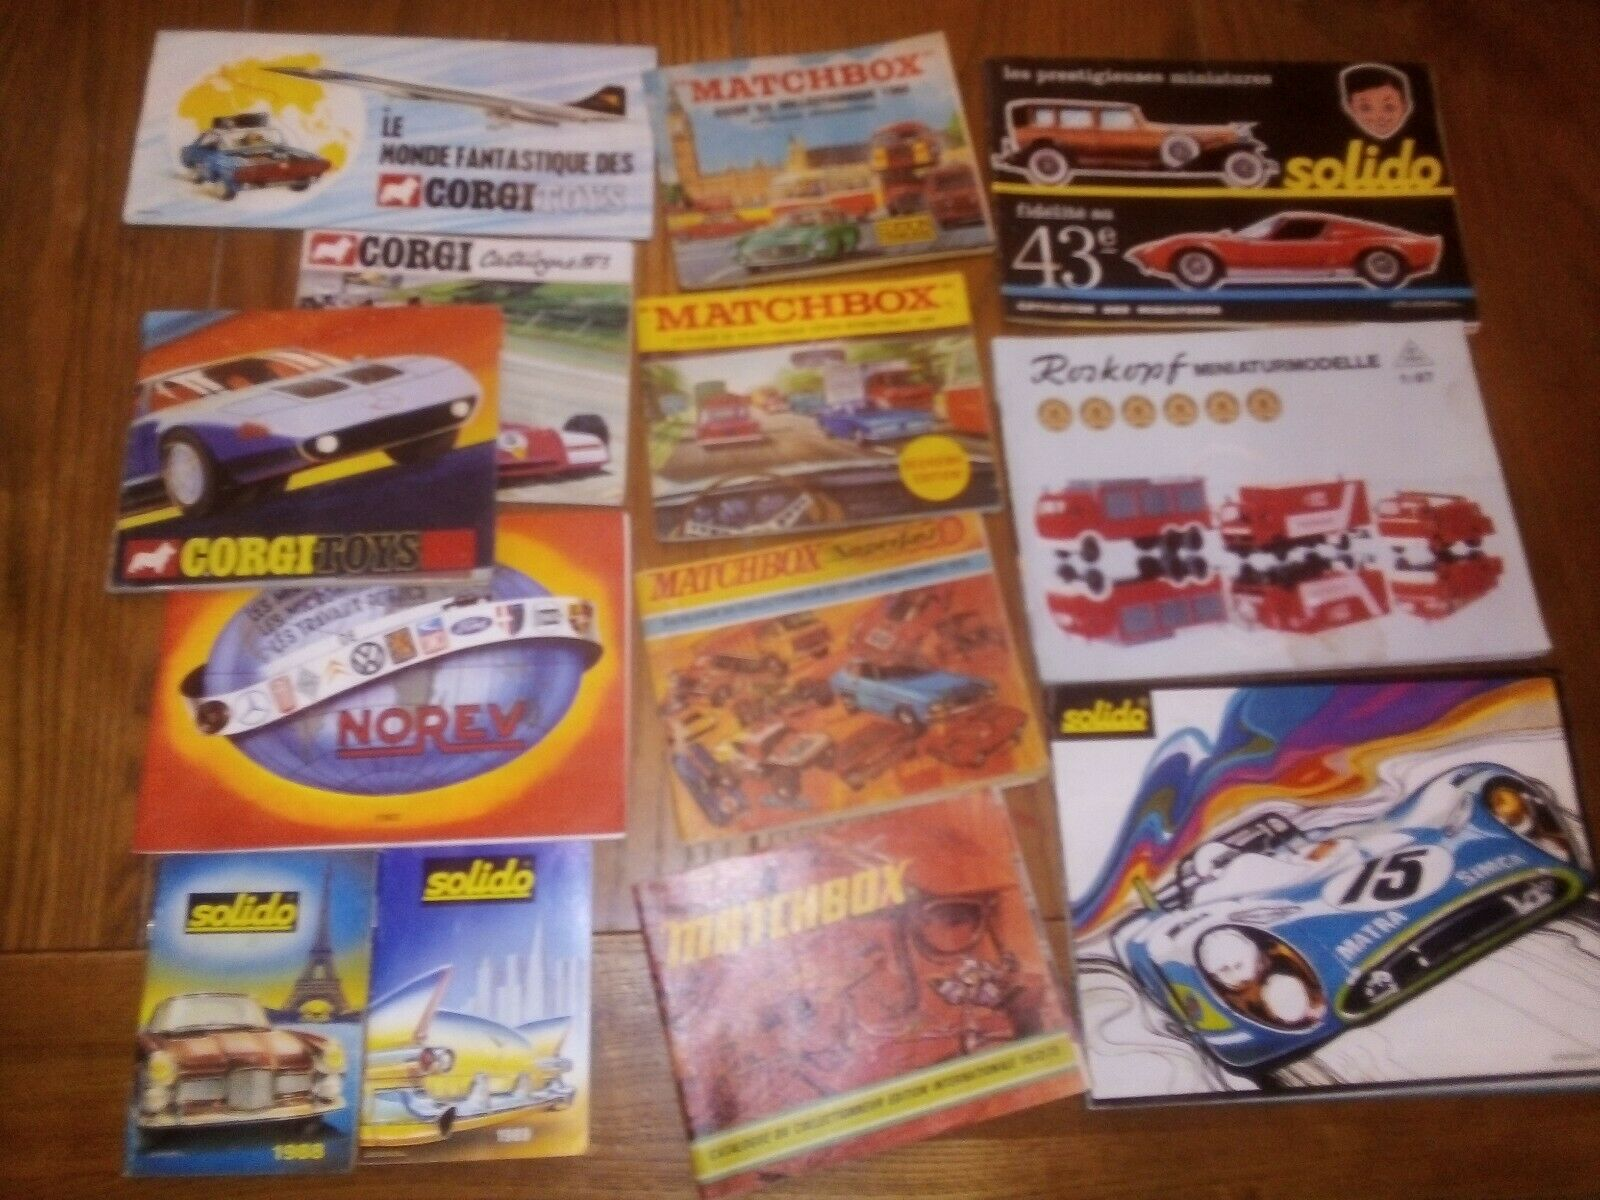 13 Catalogues Minatures Solido Corgi Norev Roskopf Matchscatola et superfast